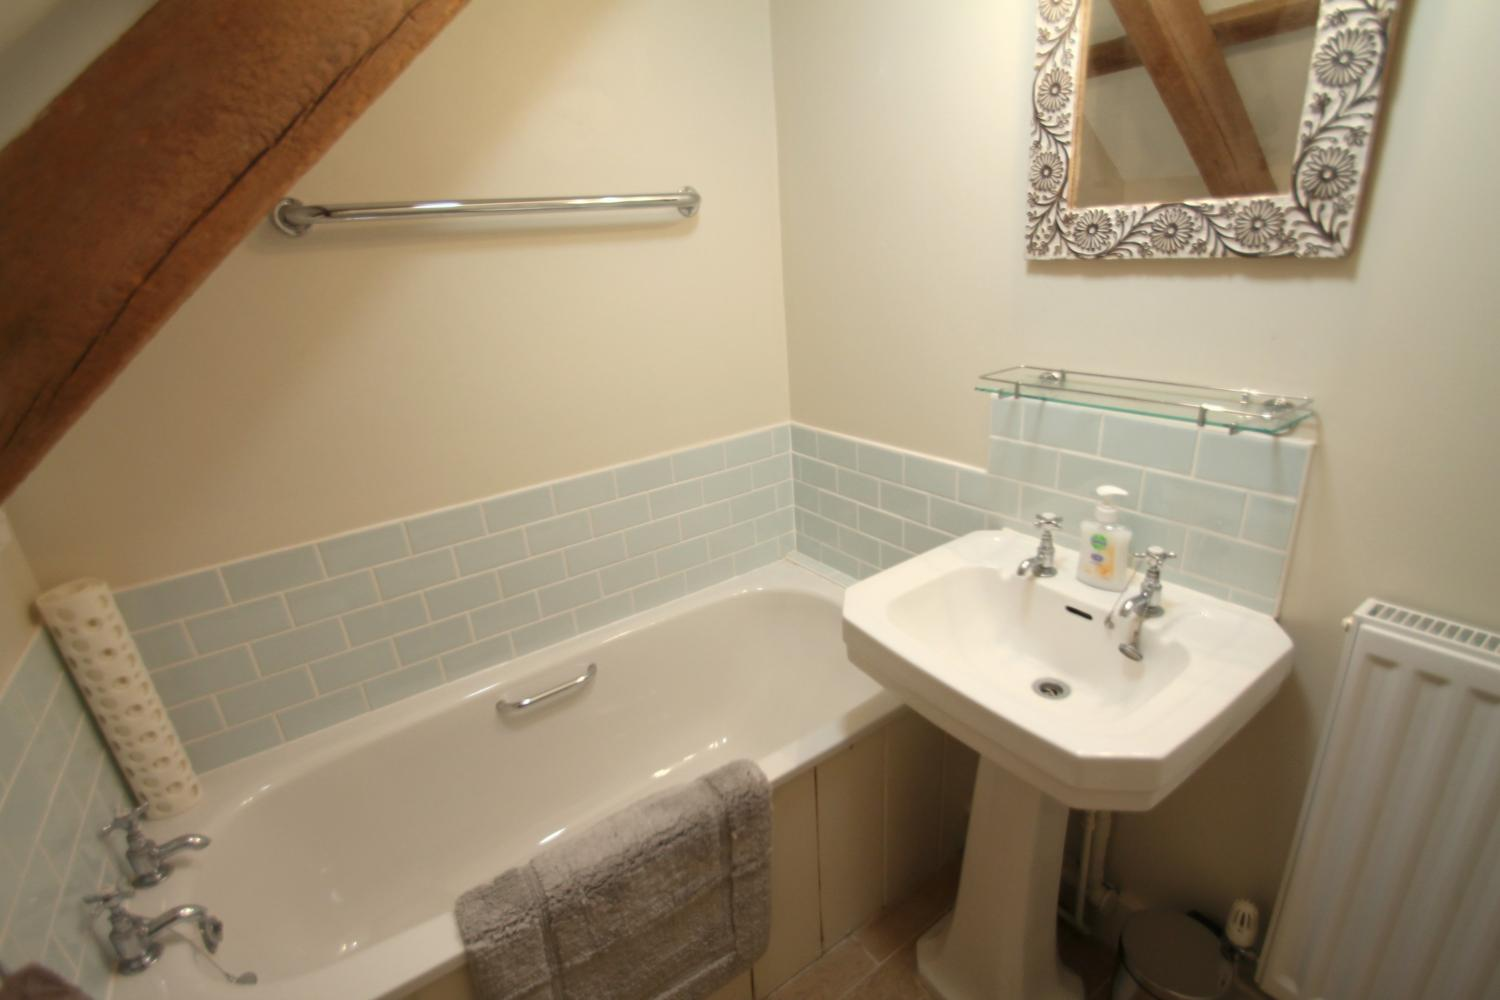 The small en-suite bathroom adjoining the double bedroom.